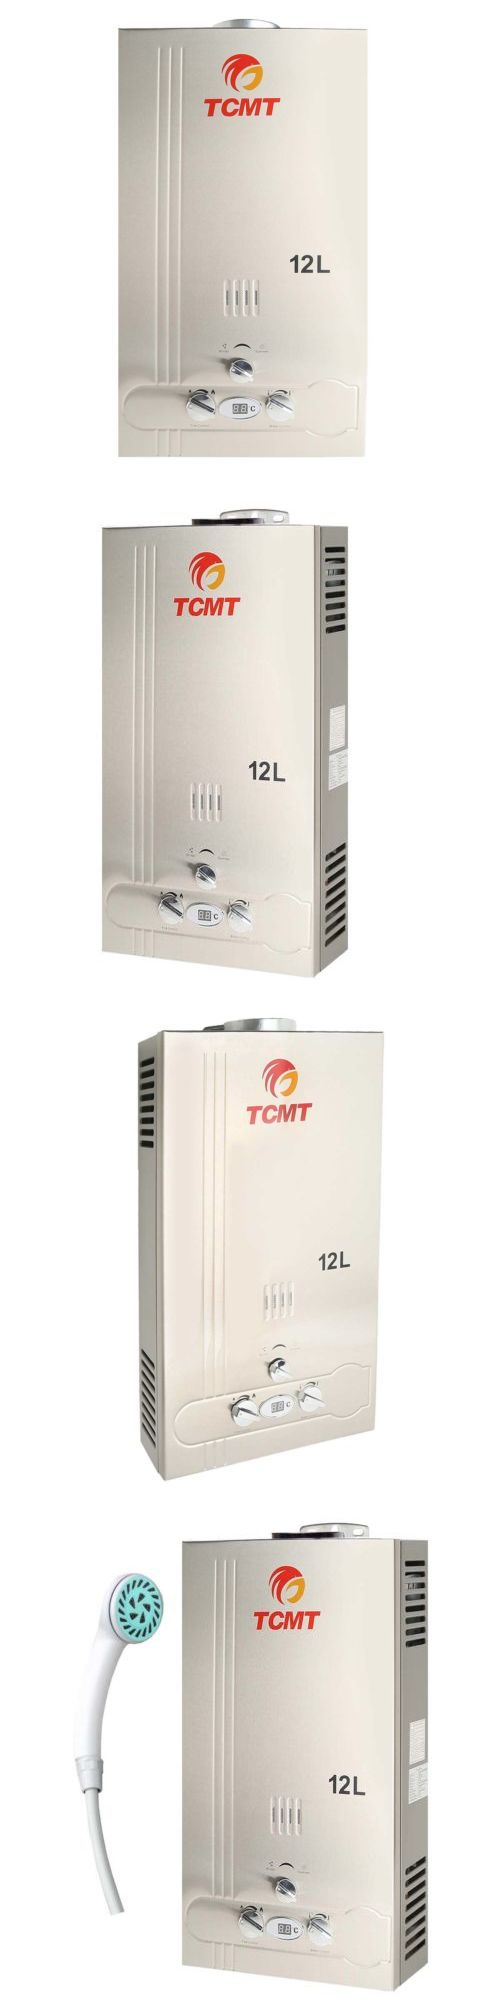 Whole House Water Heater Best 25 Gas Tankless Water Heater Ideas Only On Pinterest Small